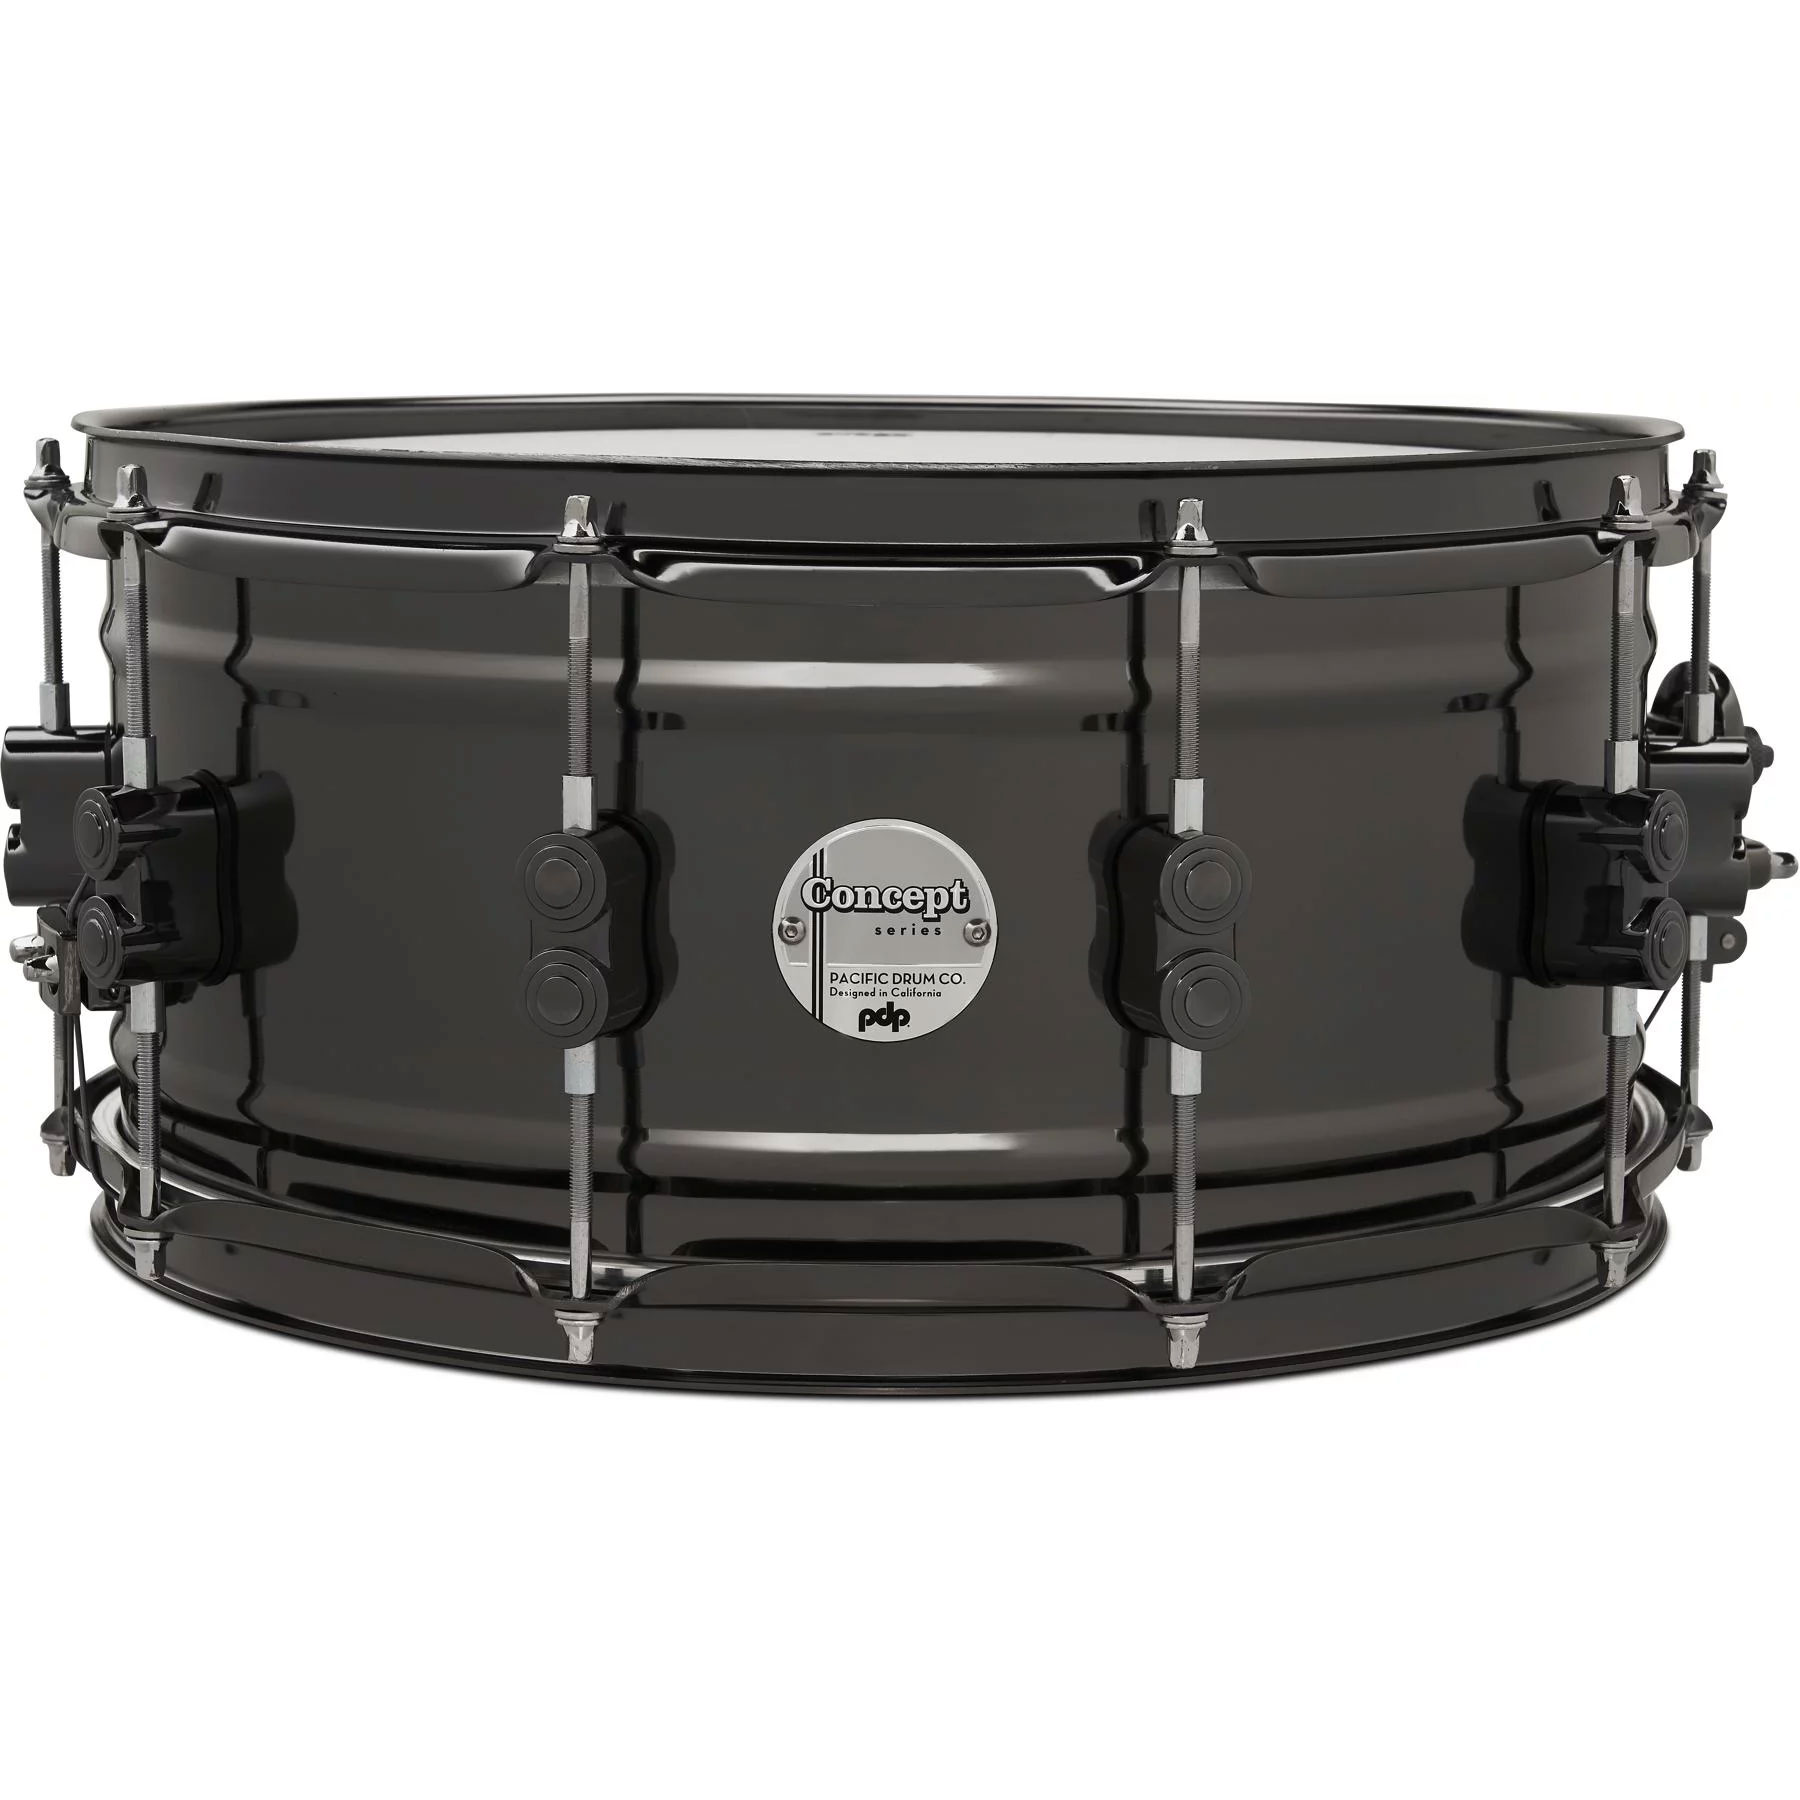 """PDP 6.5"""" x 14"""" Concept 1mm Black Nickel Over Brass Snare Drum"""